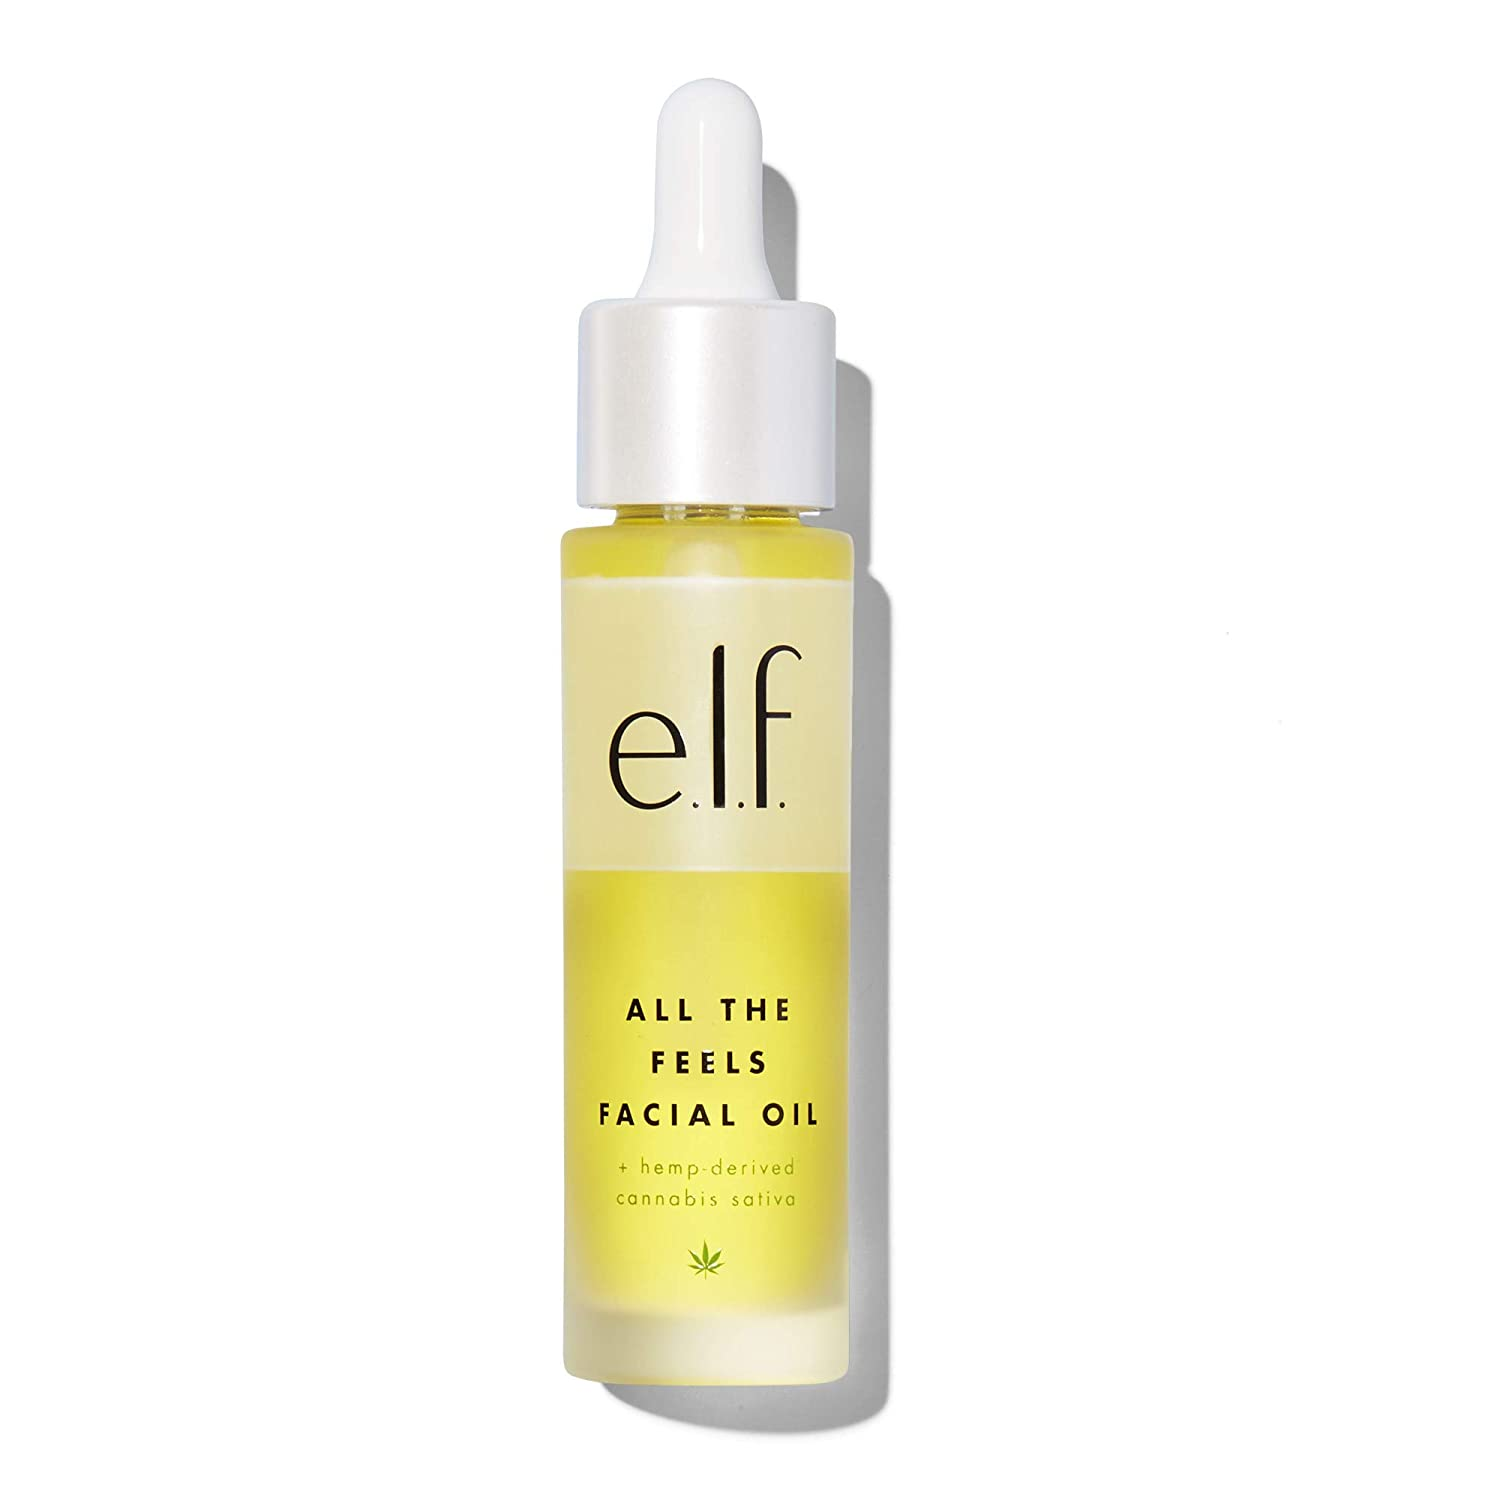 e.l.f. All the Feels Facial Oil Infused with Hemp-derived Cannabis Sativa Seed Oil and Rosehip Seed Oil 1fl oz